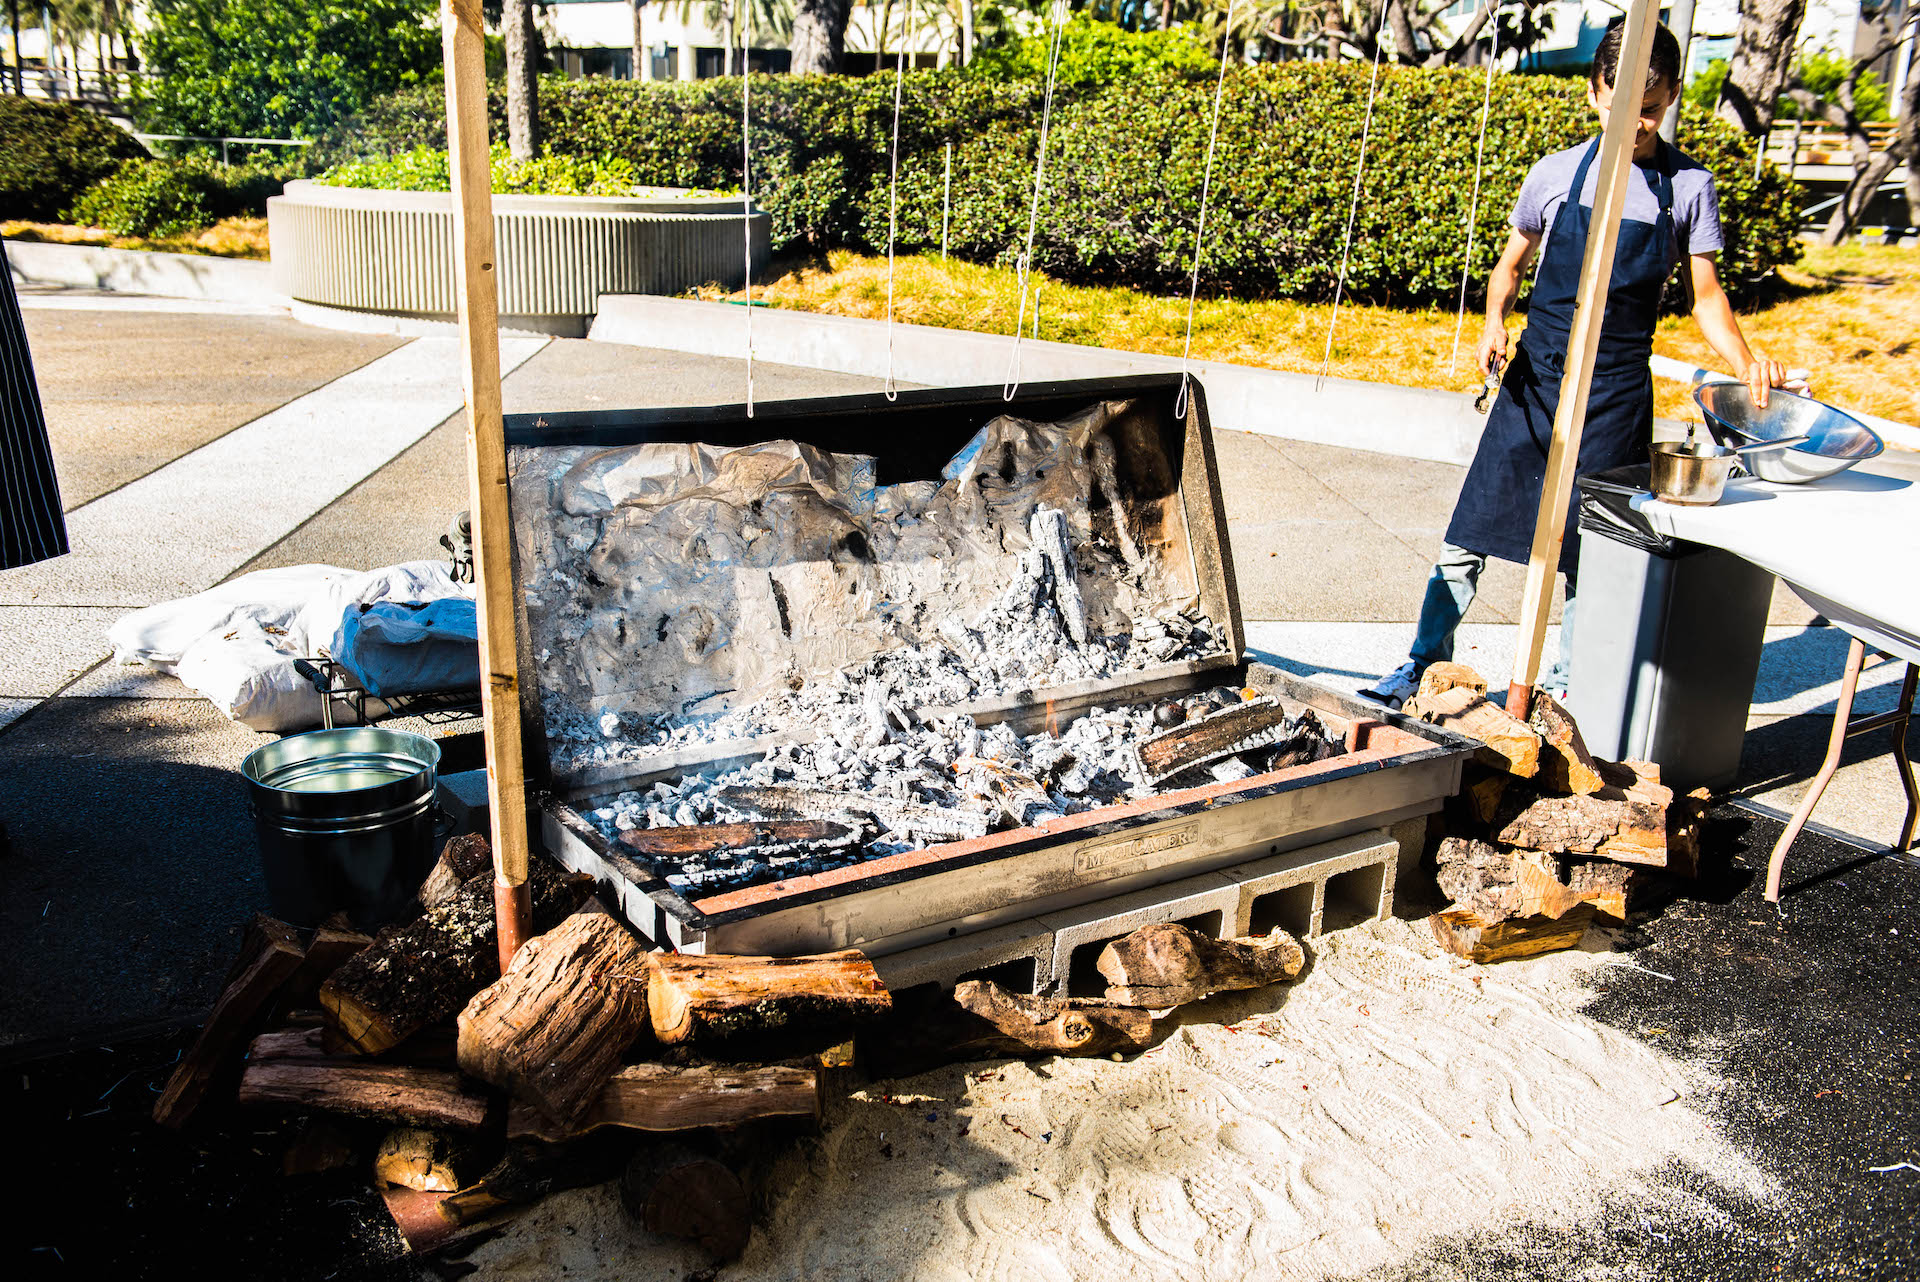 April's temporary barbecue pit is a serious affair.